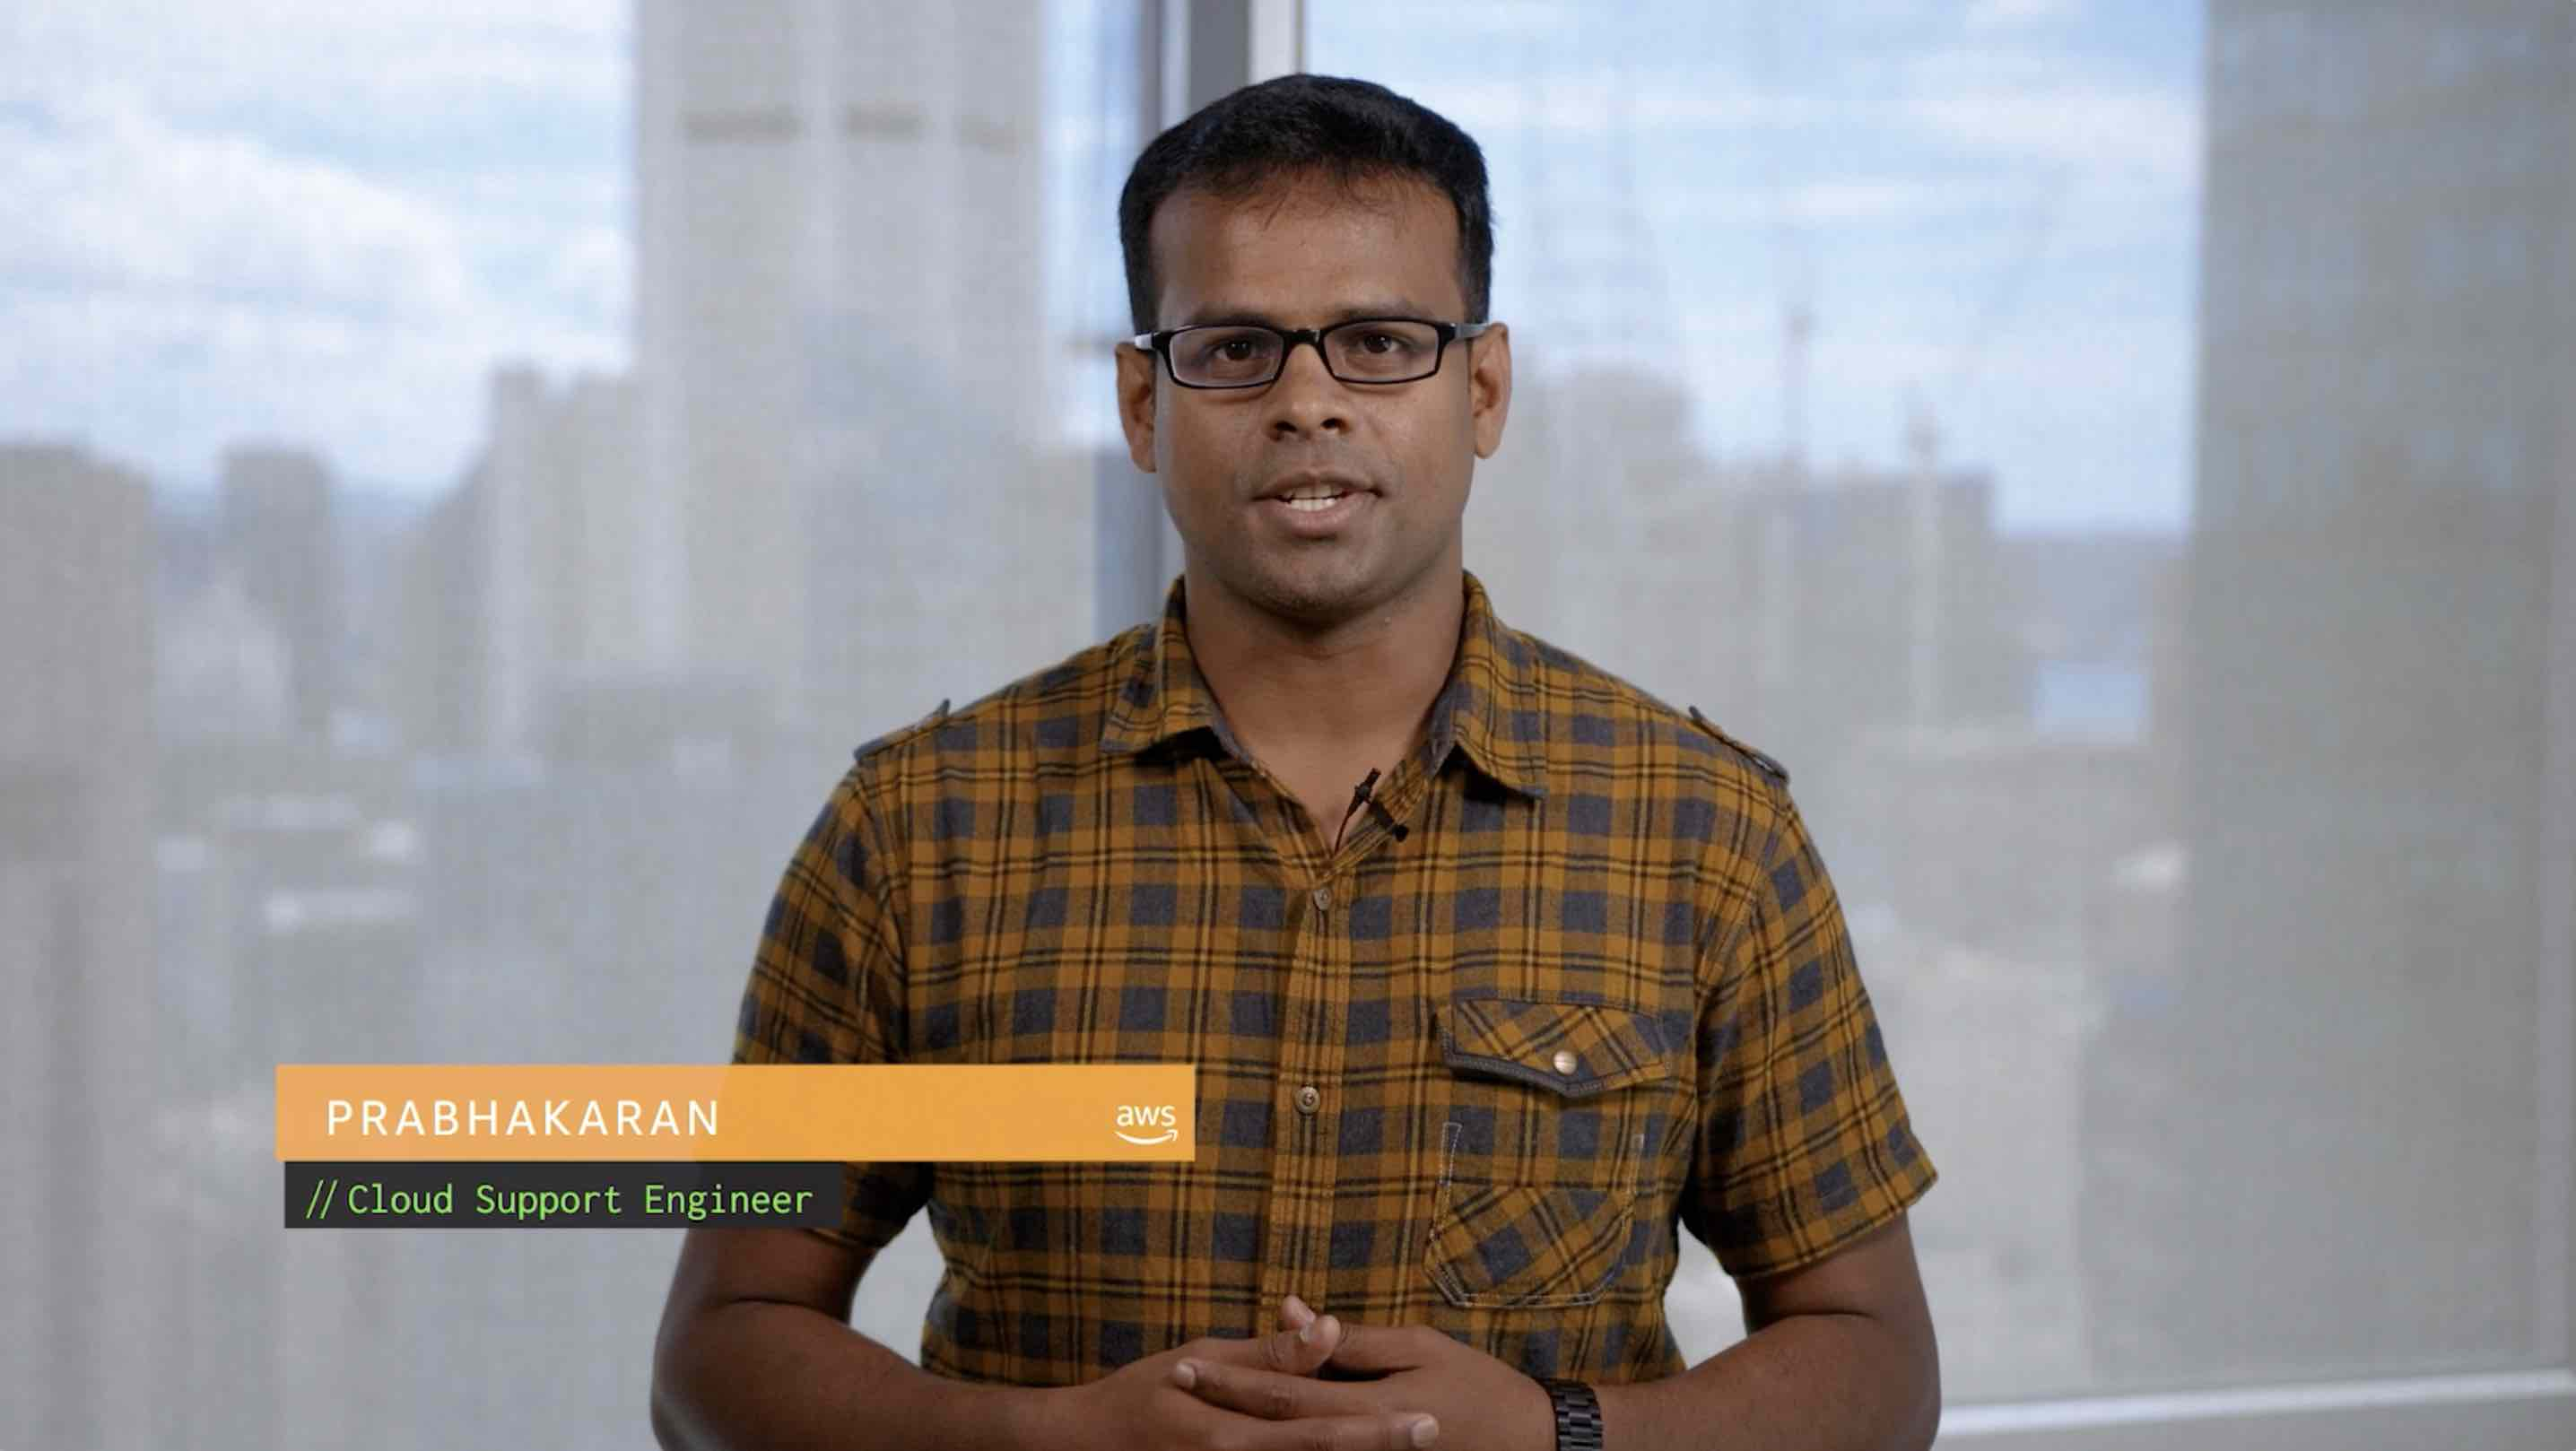 Watch Prabhakaran's video to learn more